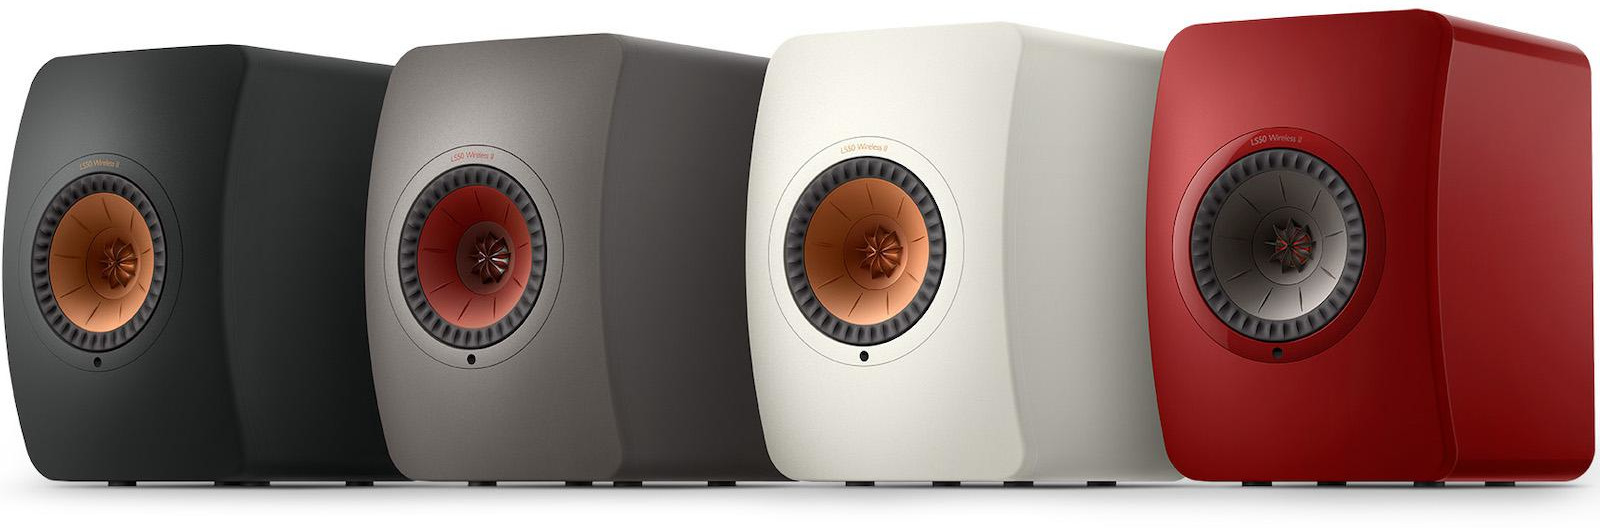 KEF's LS50 Wireless II. Packed to the gills with wireless features. Seen here in all the four colour options.